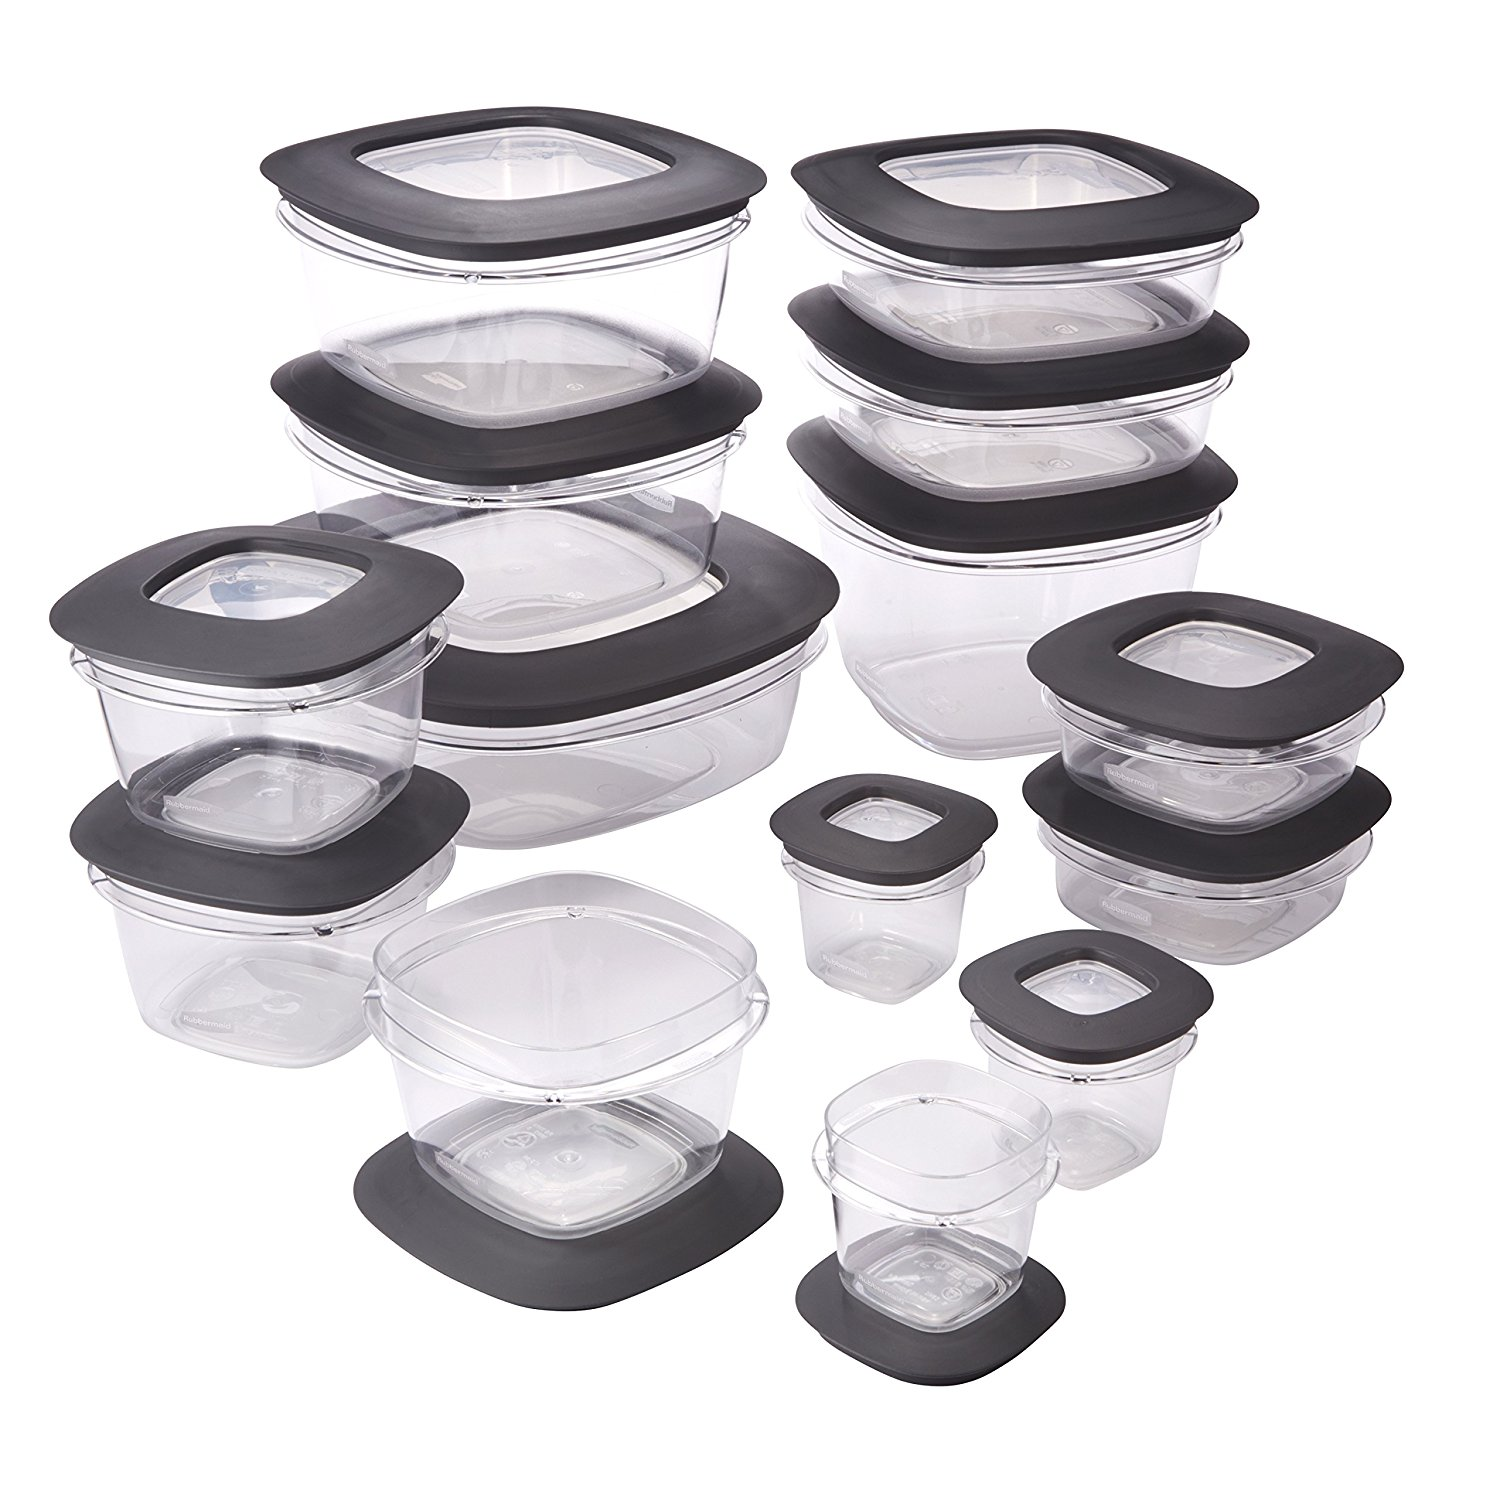 Best Price Ever 28 Pc Set Rubbermaid Premier Food Storage Containers